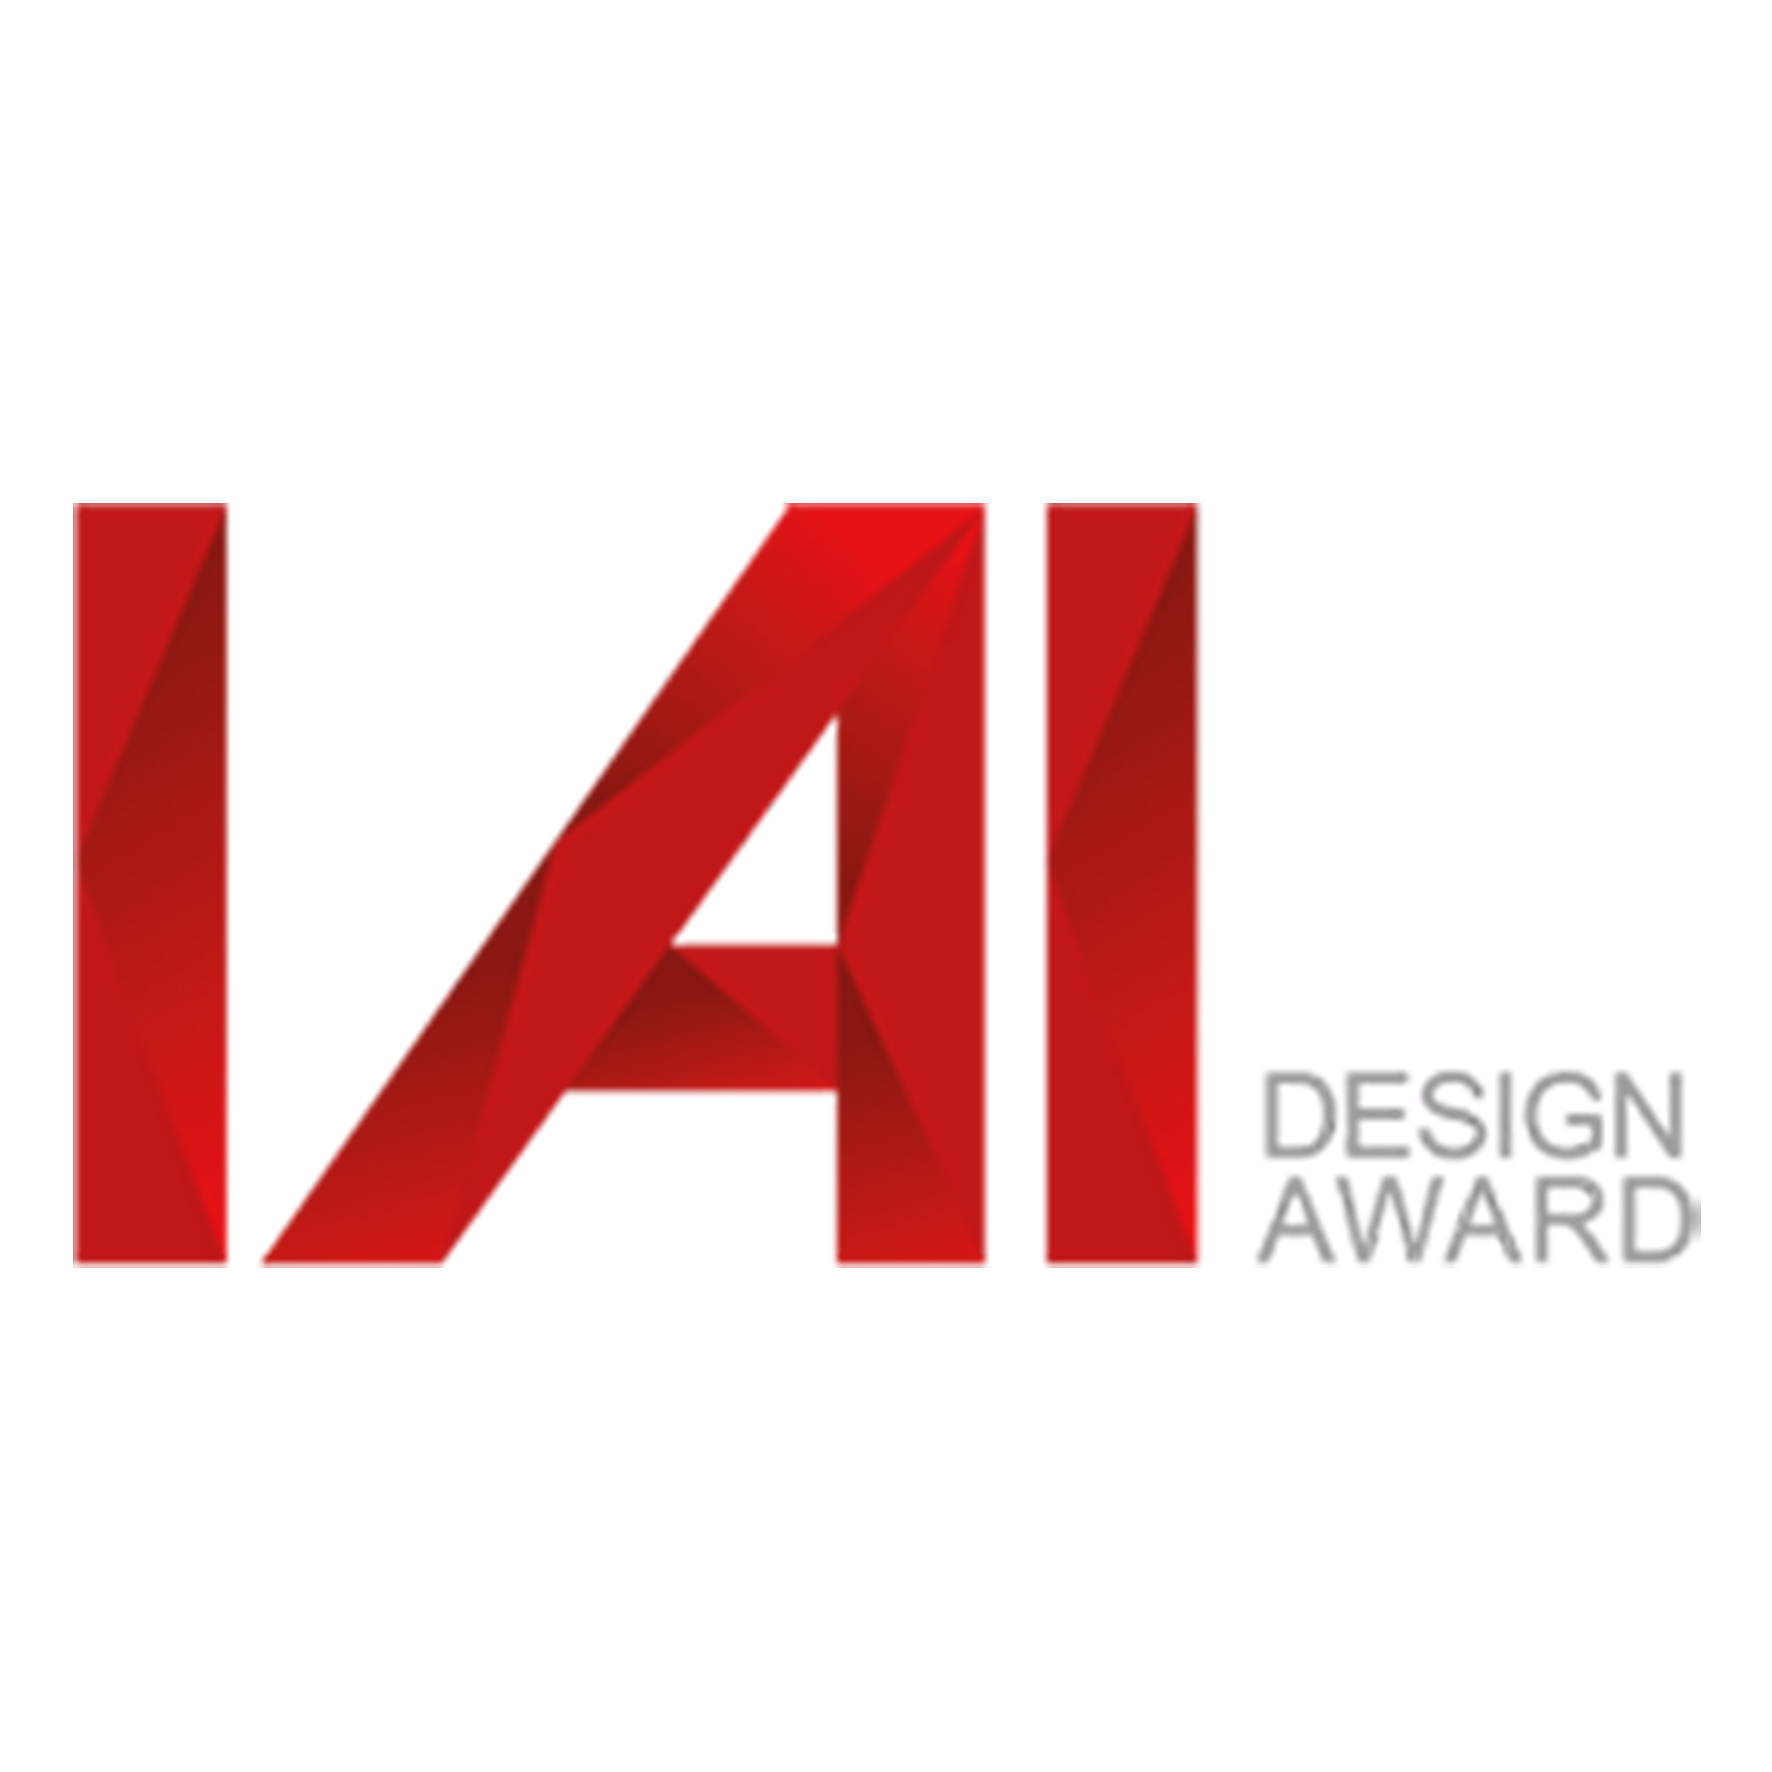 Design Excellence Award IAI DESIGN AWARD 2018, Asia Pacific Designers Federation IAI